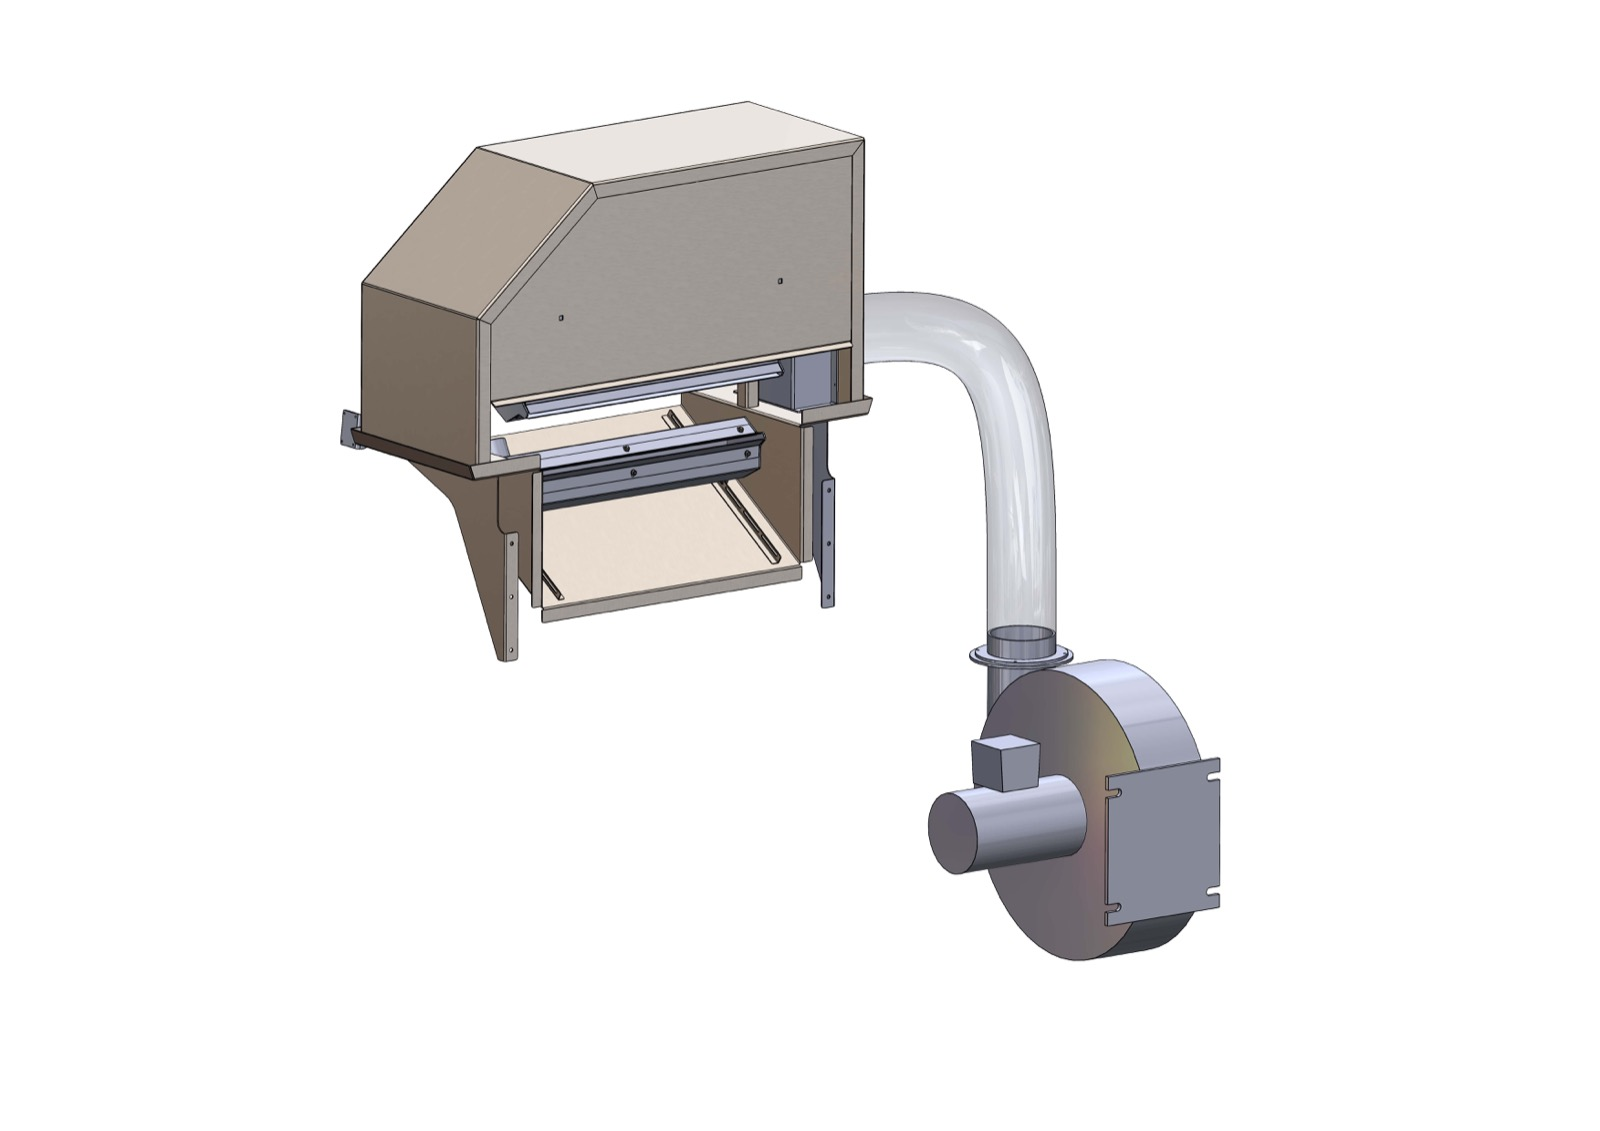 https://www.industrialproductsolutions.nl/wp-content/uploads/2021/05/WhatsApp-Image-2021-05-27-at-14.17.25-11.jpeg